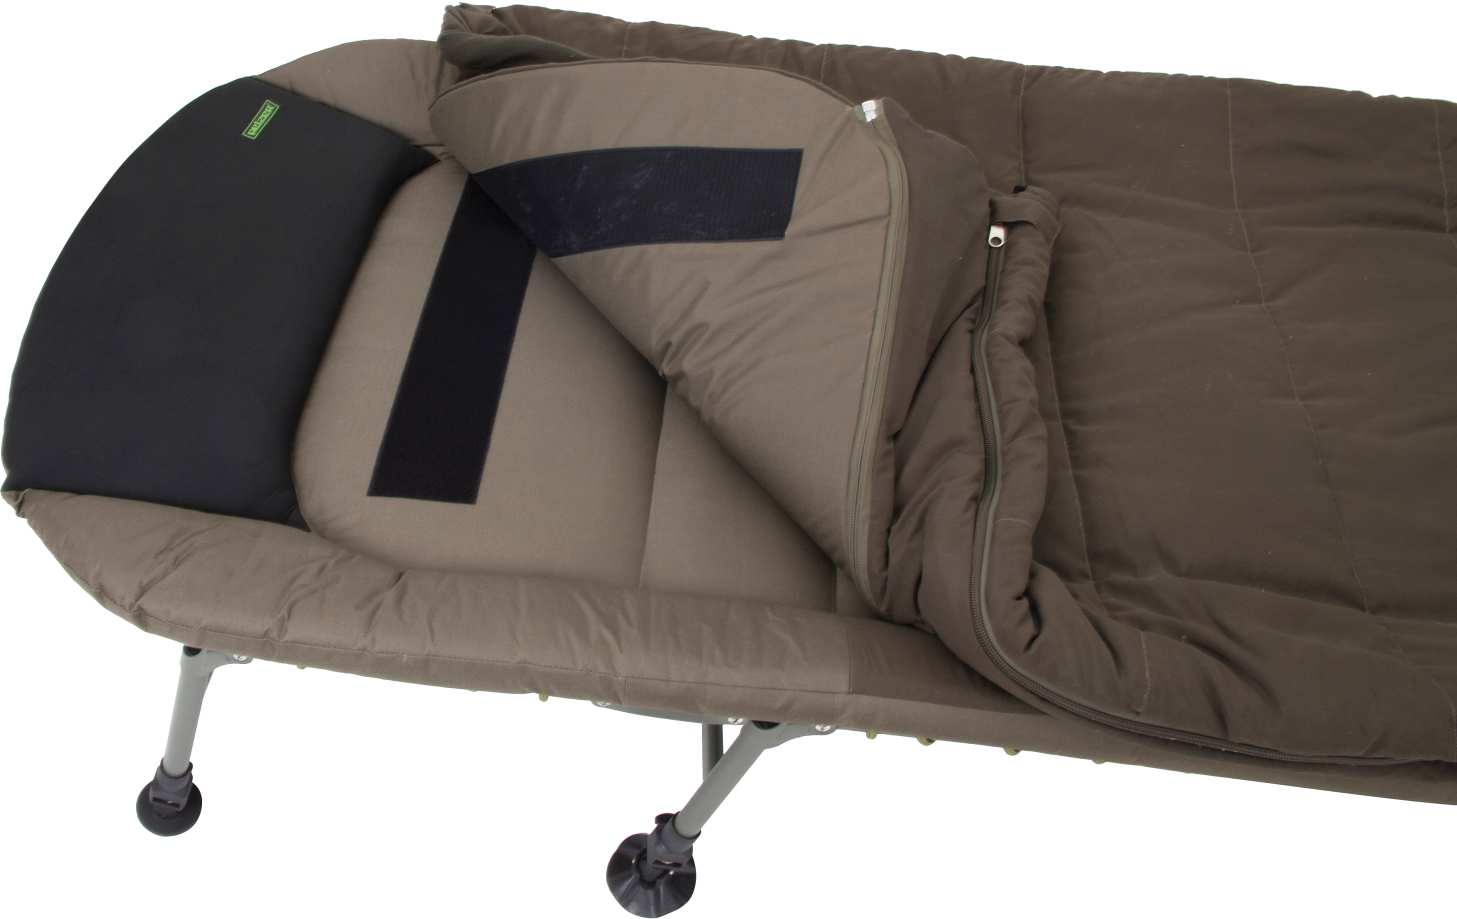 Marvelous Pelzer Compact Bed Chair Flat With Sleeping Bag Ncnpc Chair Design For Home Ncnpcorg